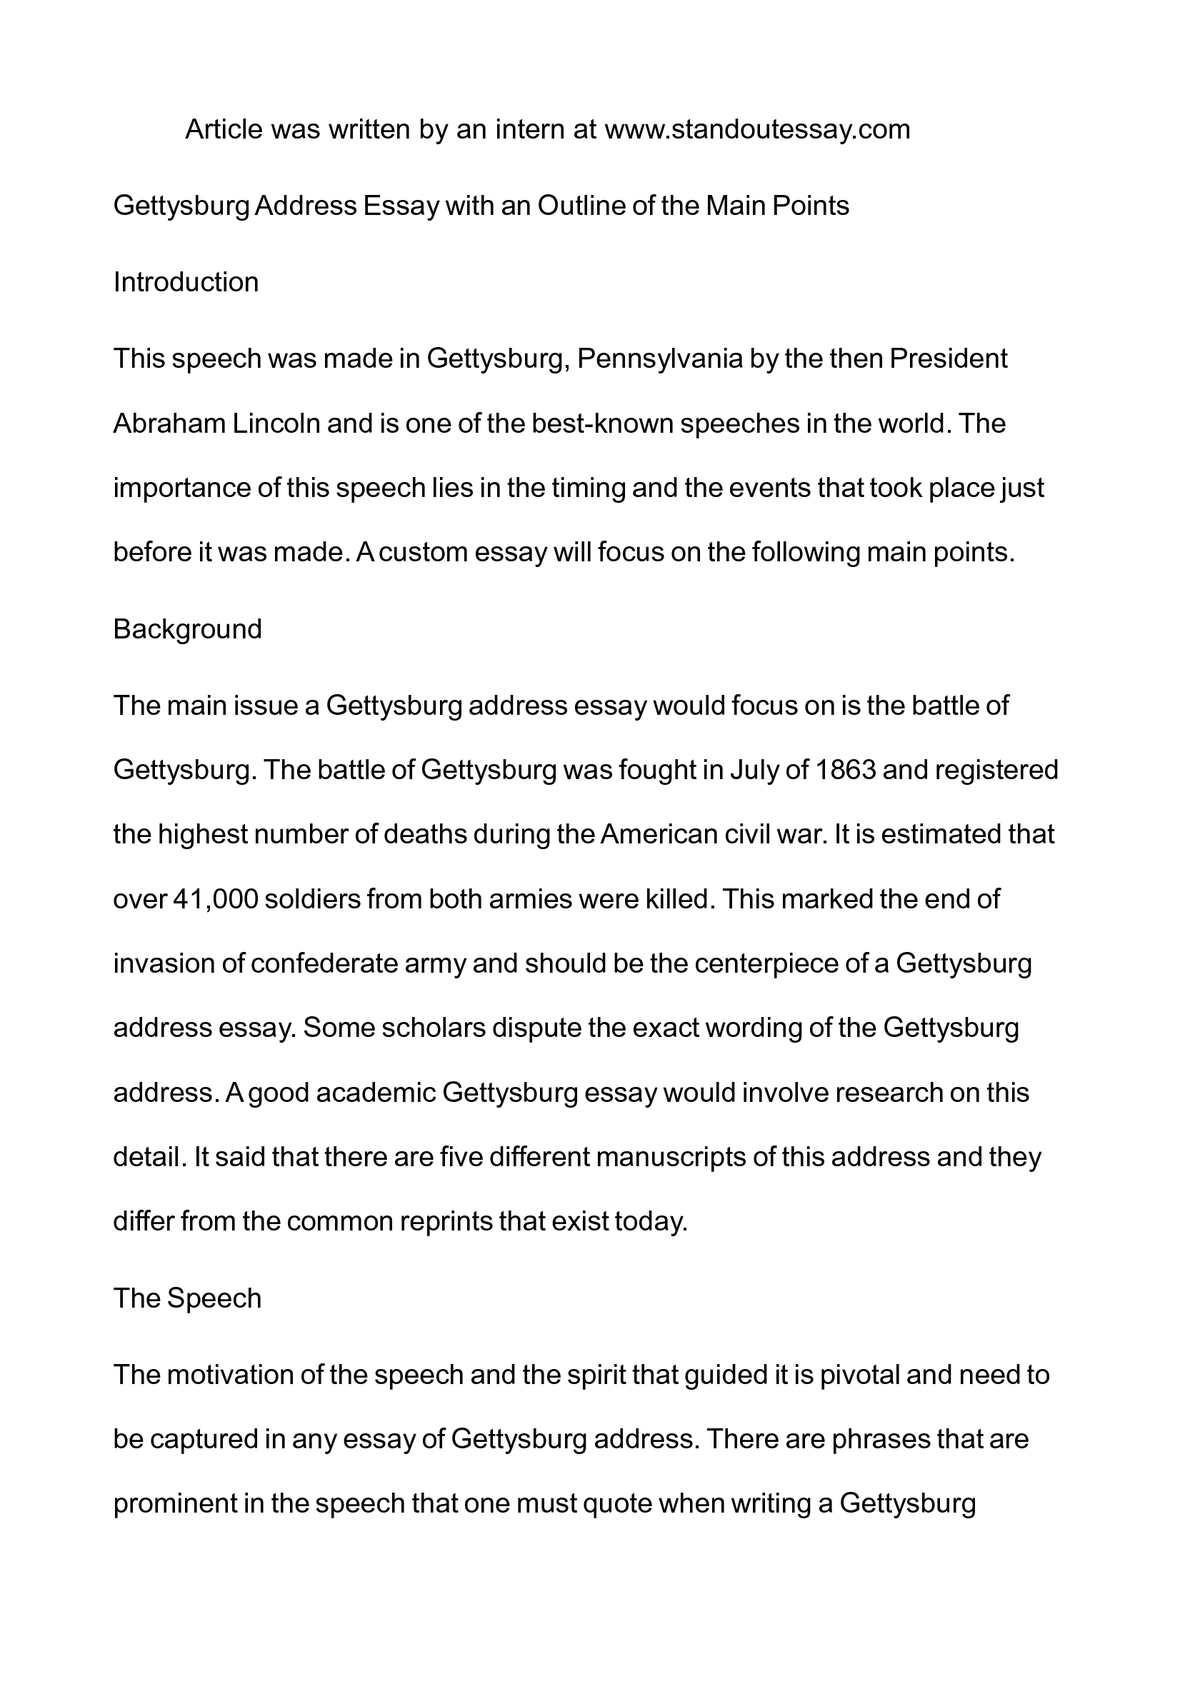 Worksheets Gettysburg Address Worksheet abraham lincoln essay tips for writing an effective calam atilde copy o gettysburg address outline of the main calamatildecopyo essay